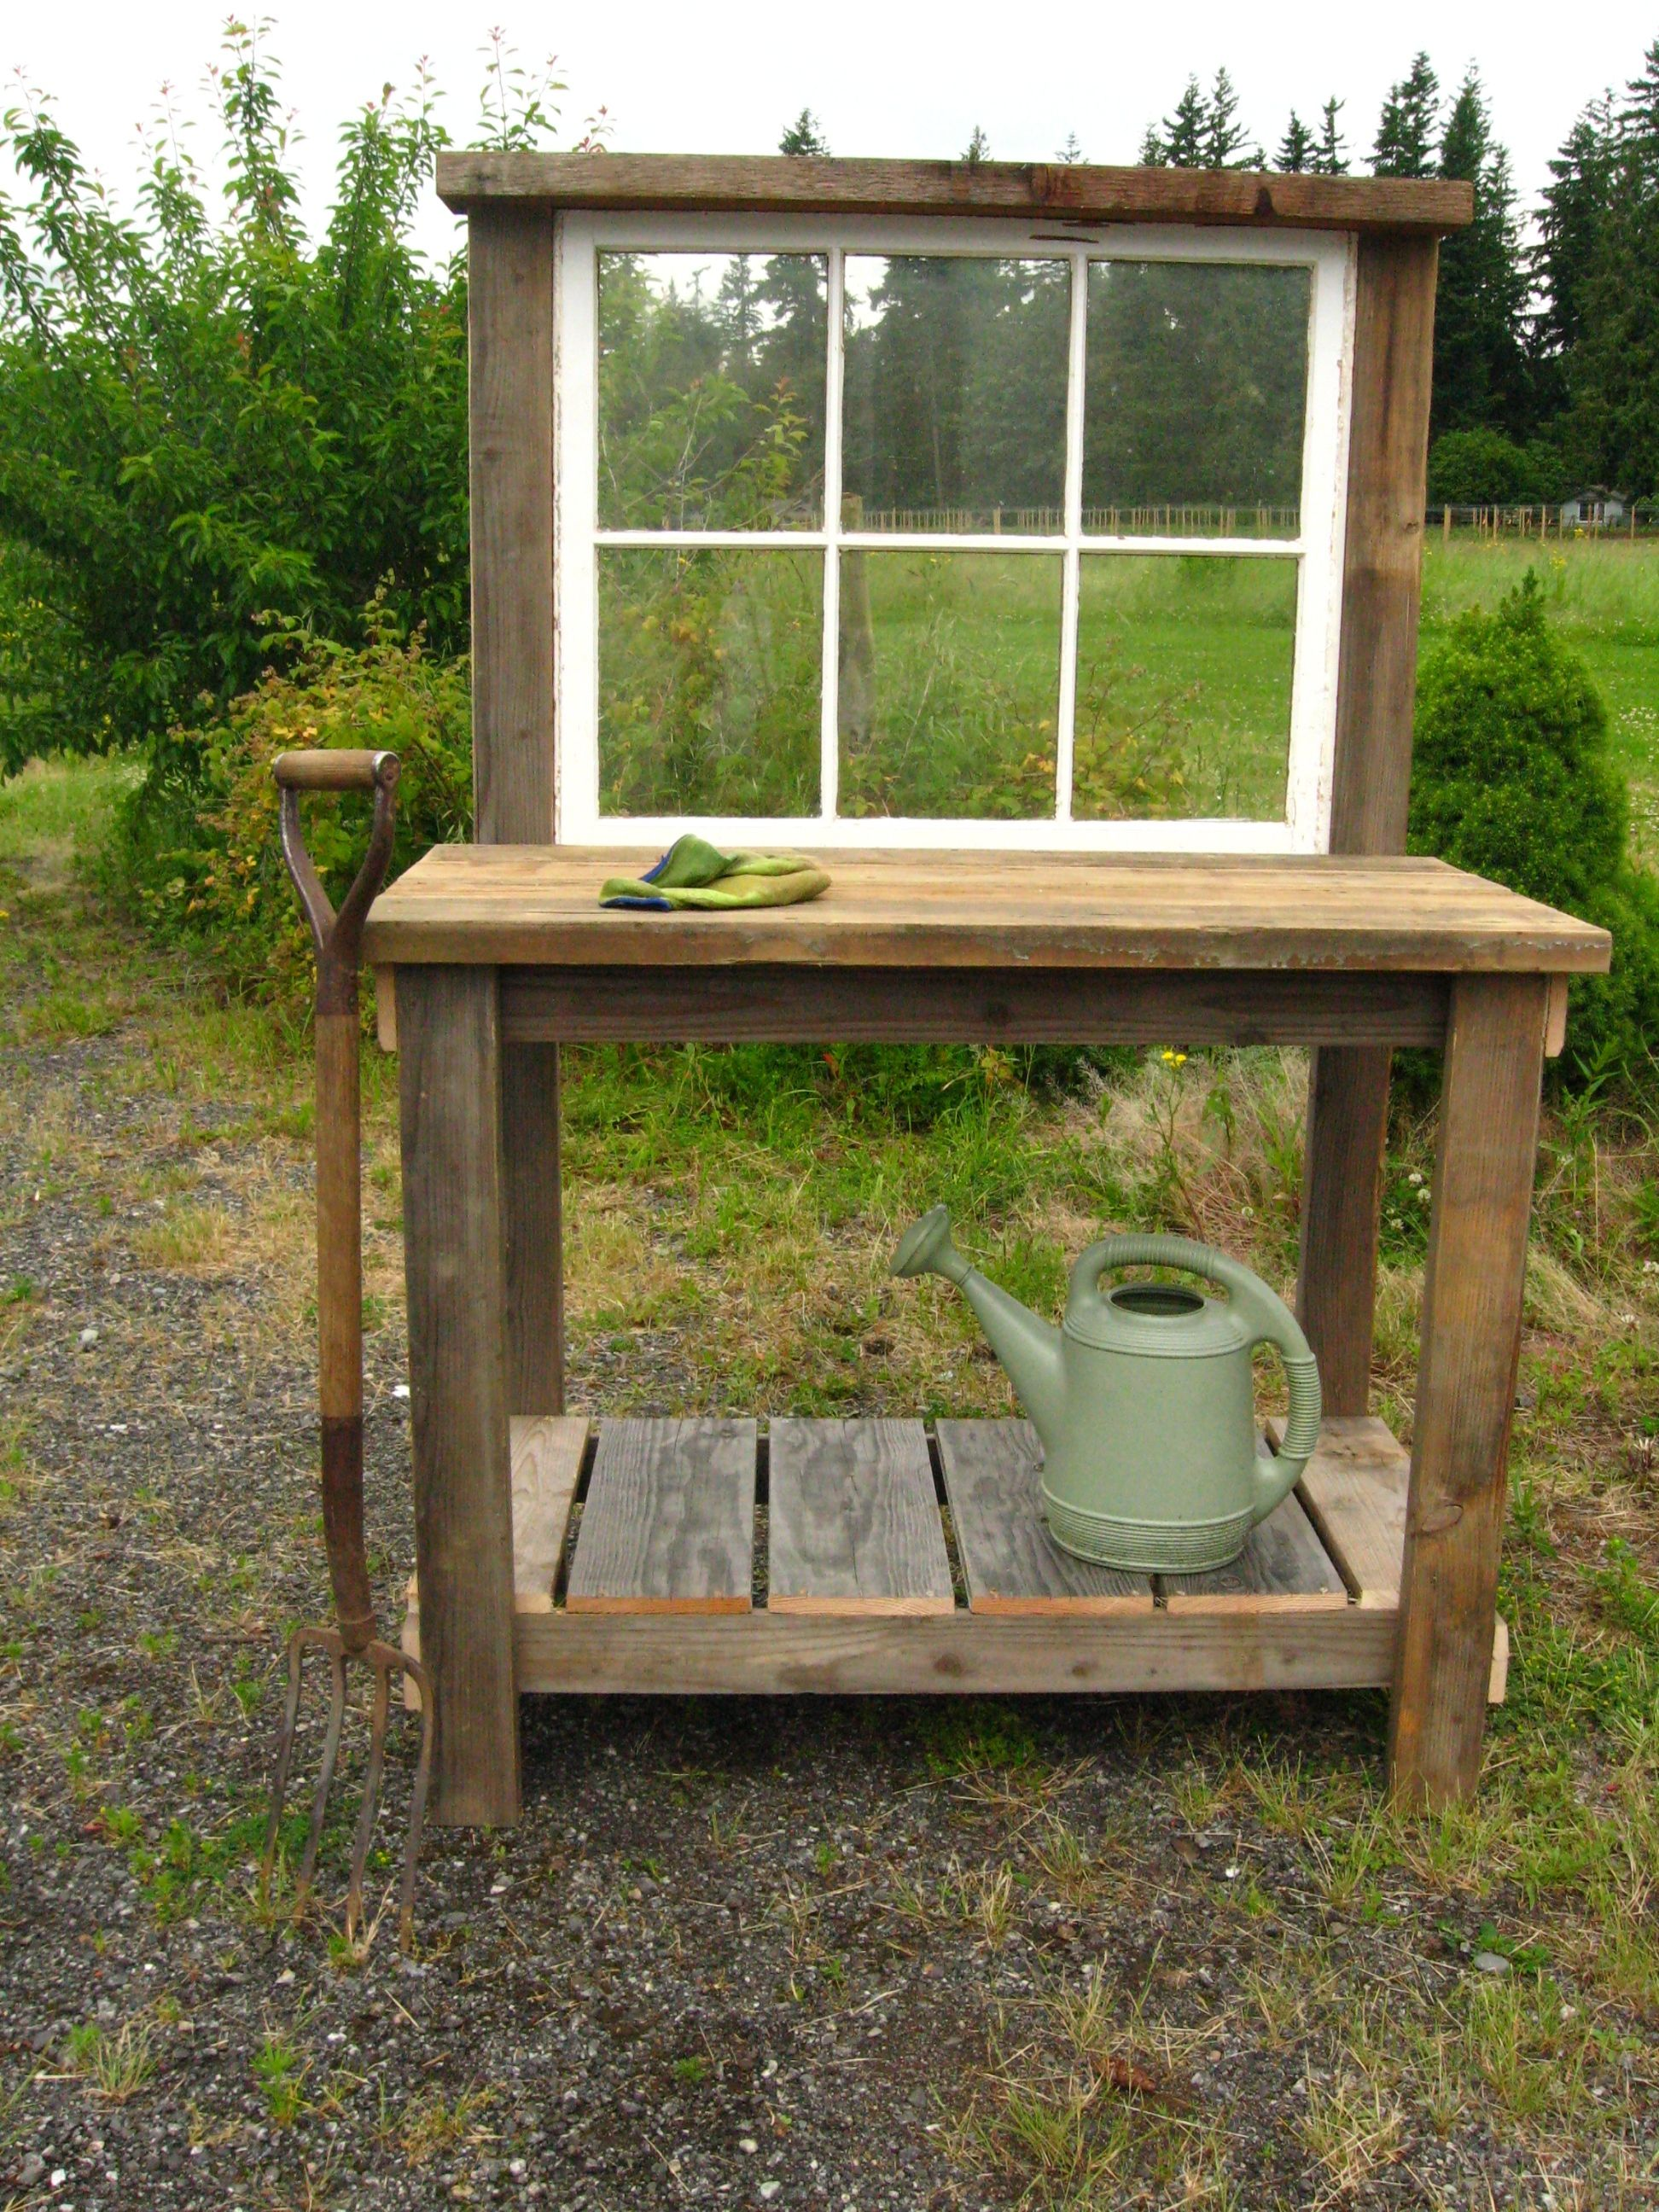 50+ Best Potting Bench Ideas To Beautify Your Garden | Potting ...